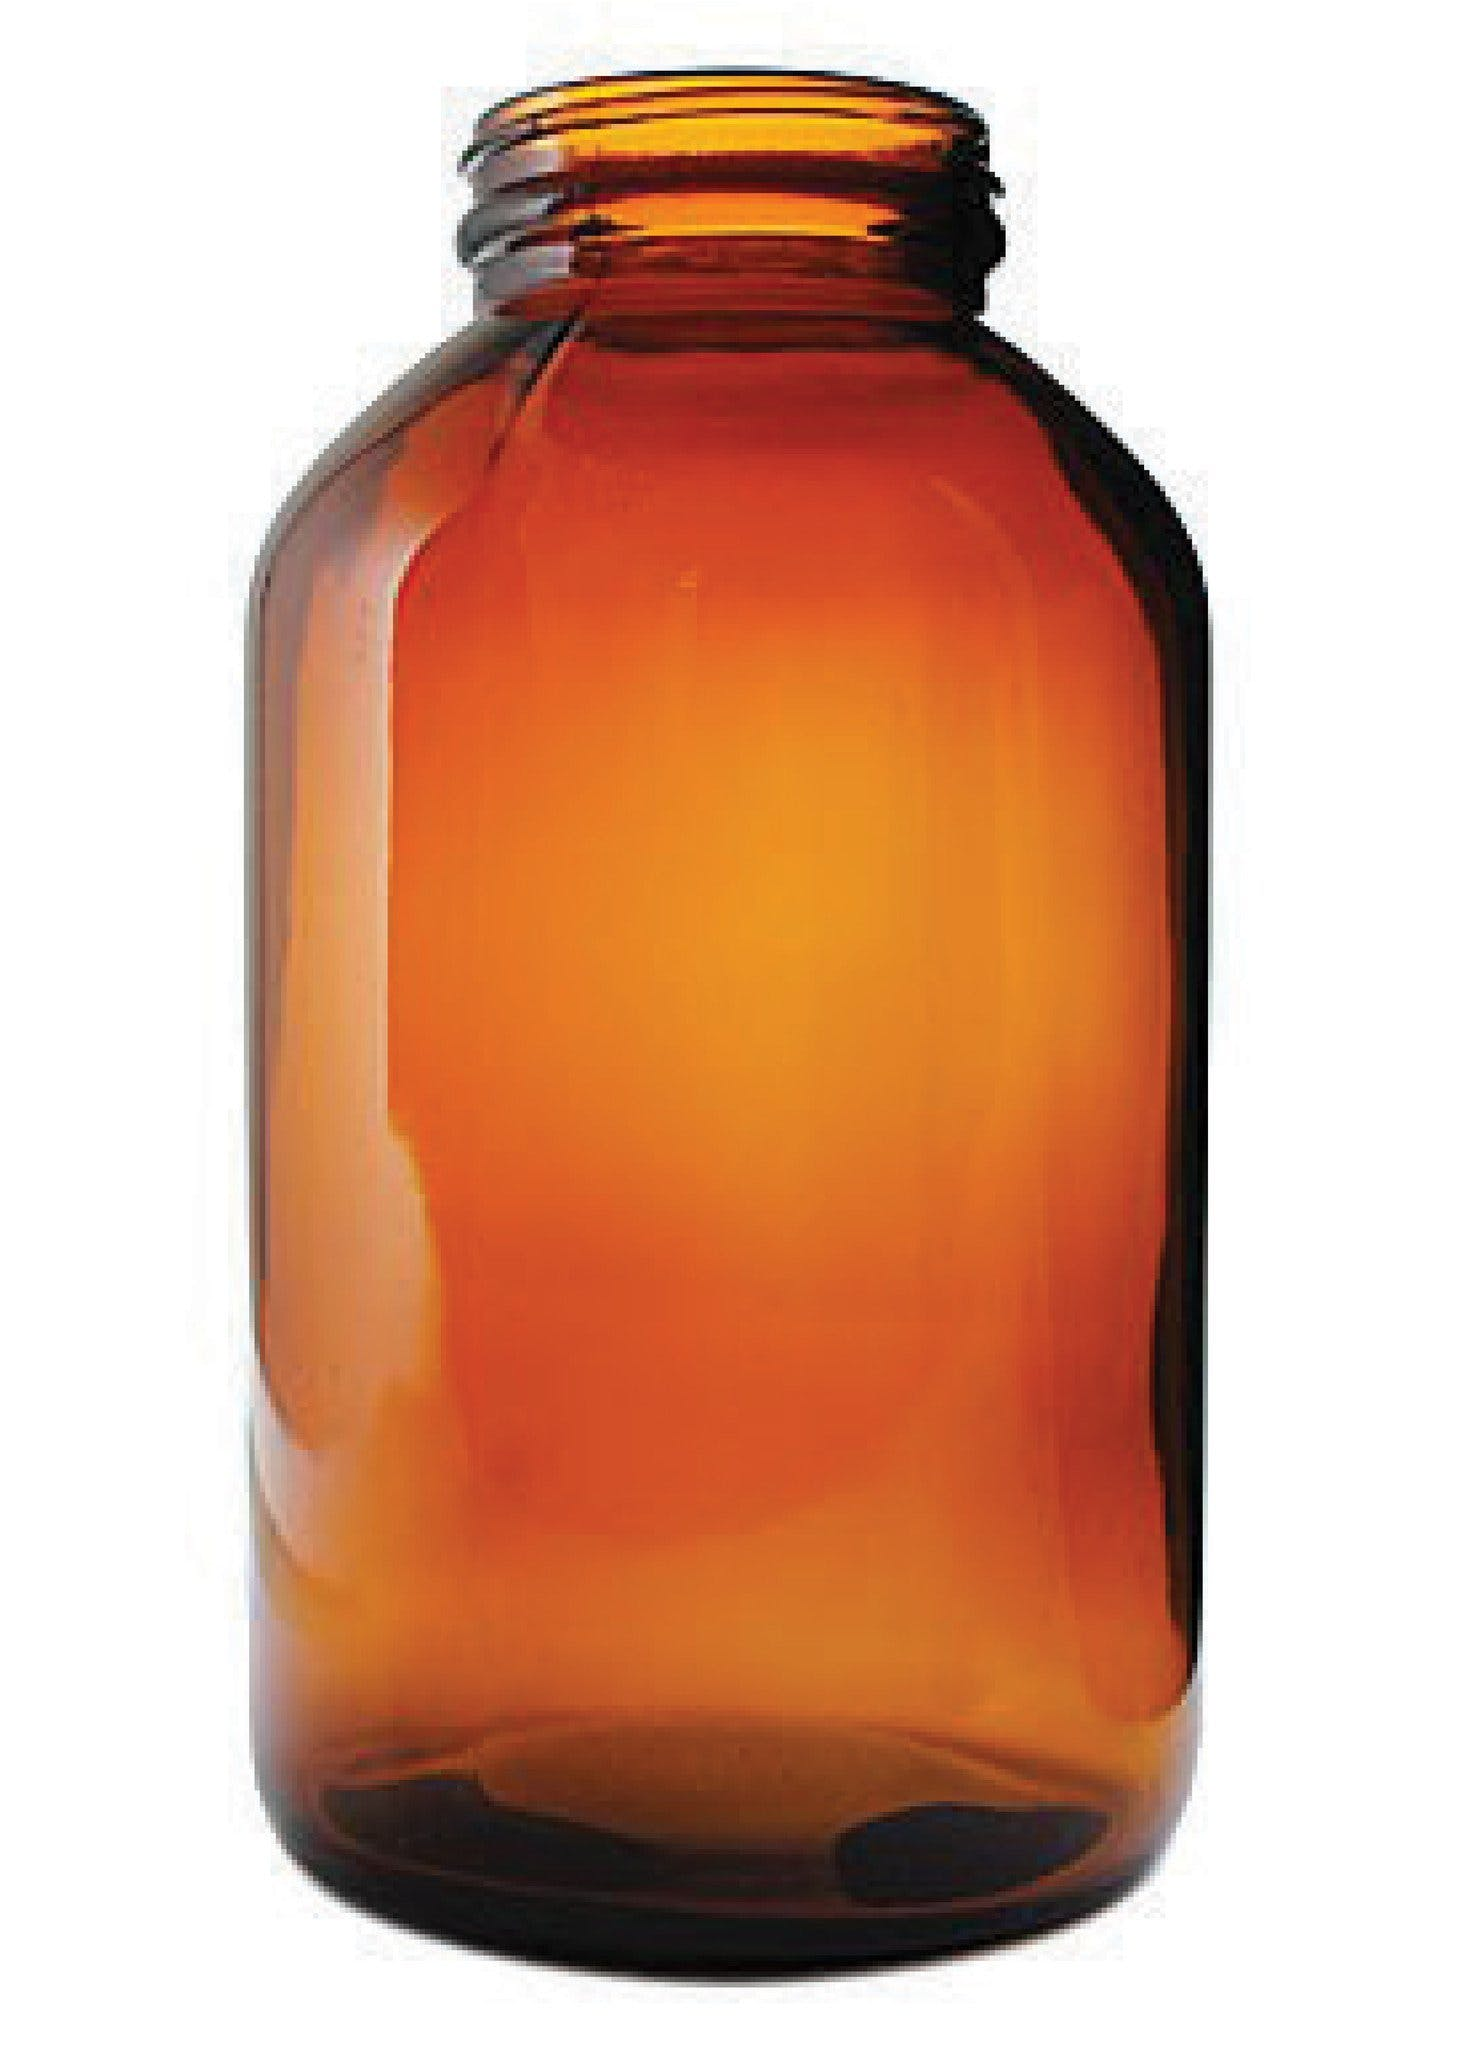 750ml Widemouth Growler #645 - sold by Clearwater Gear